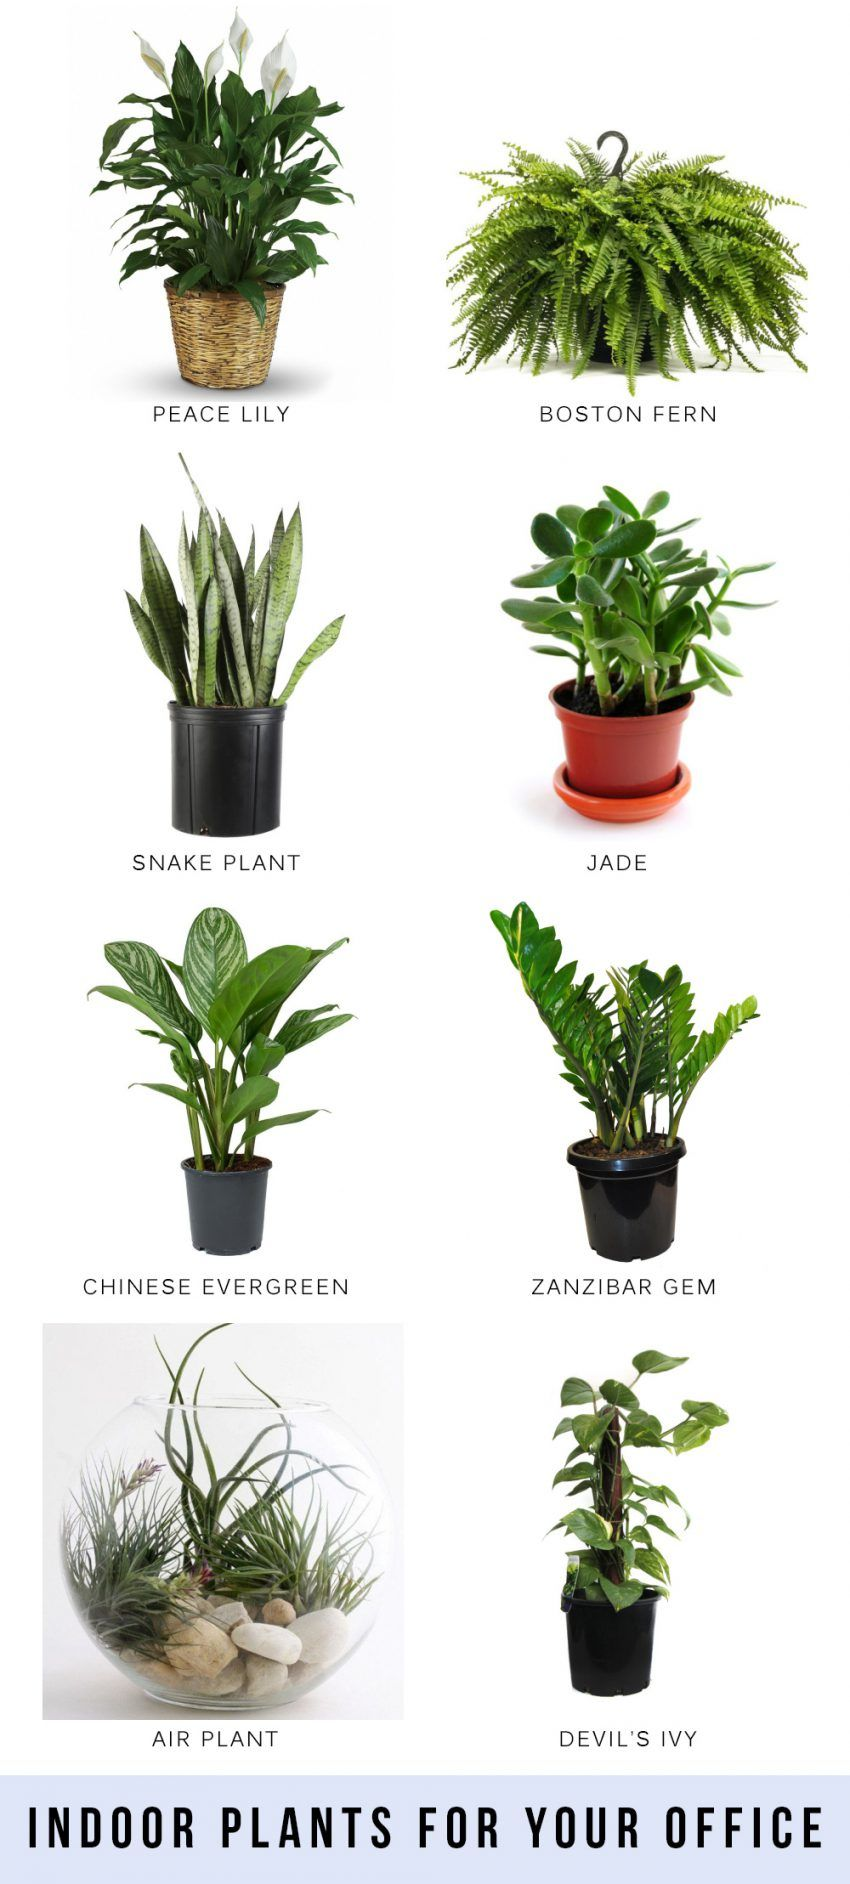 Indoor plants for your office | Plants, Best air purifying ... on tall houseplants, tropical houseplants, indoor houseplants, cactus houseplants,